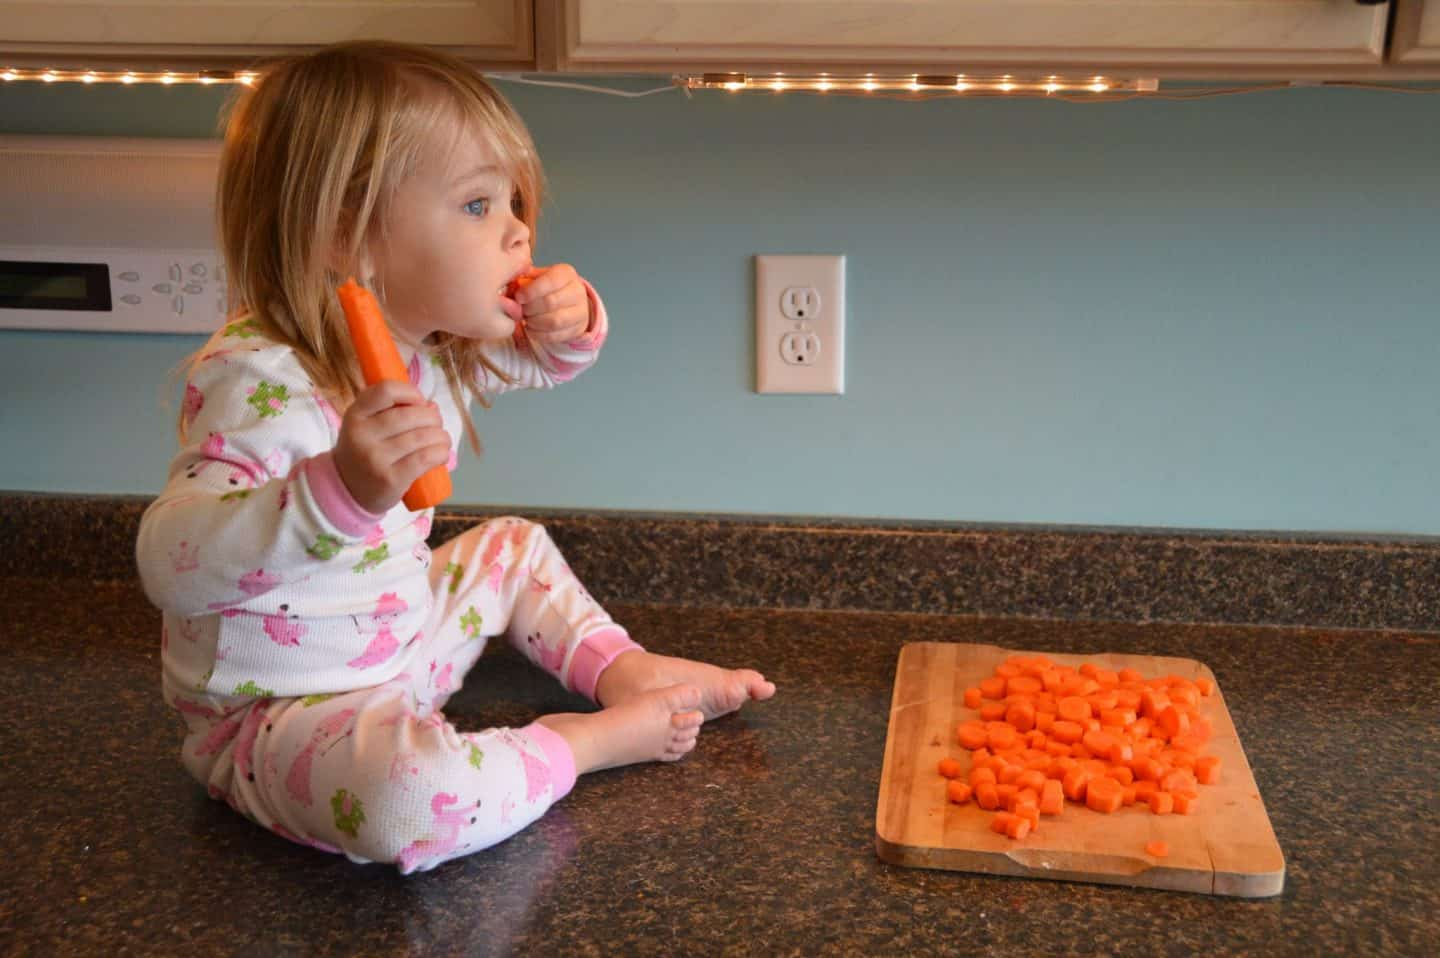 Vegetables for Kids: The Best Tips to Get Kids to Eat Veggies